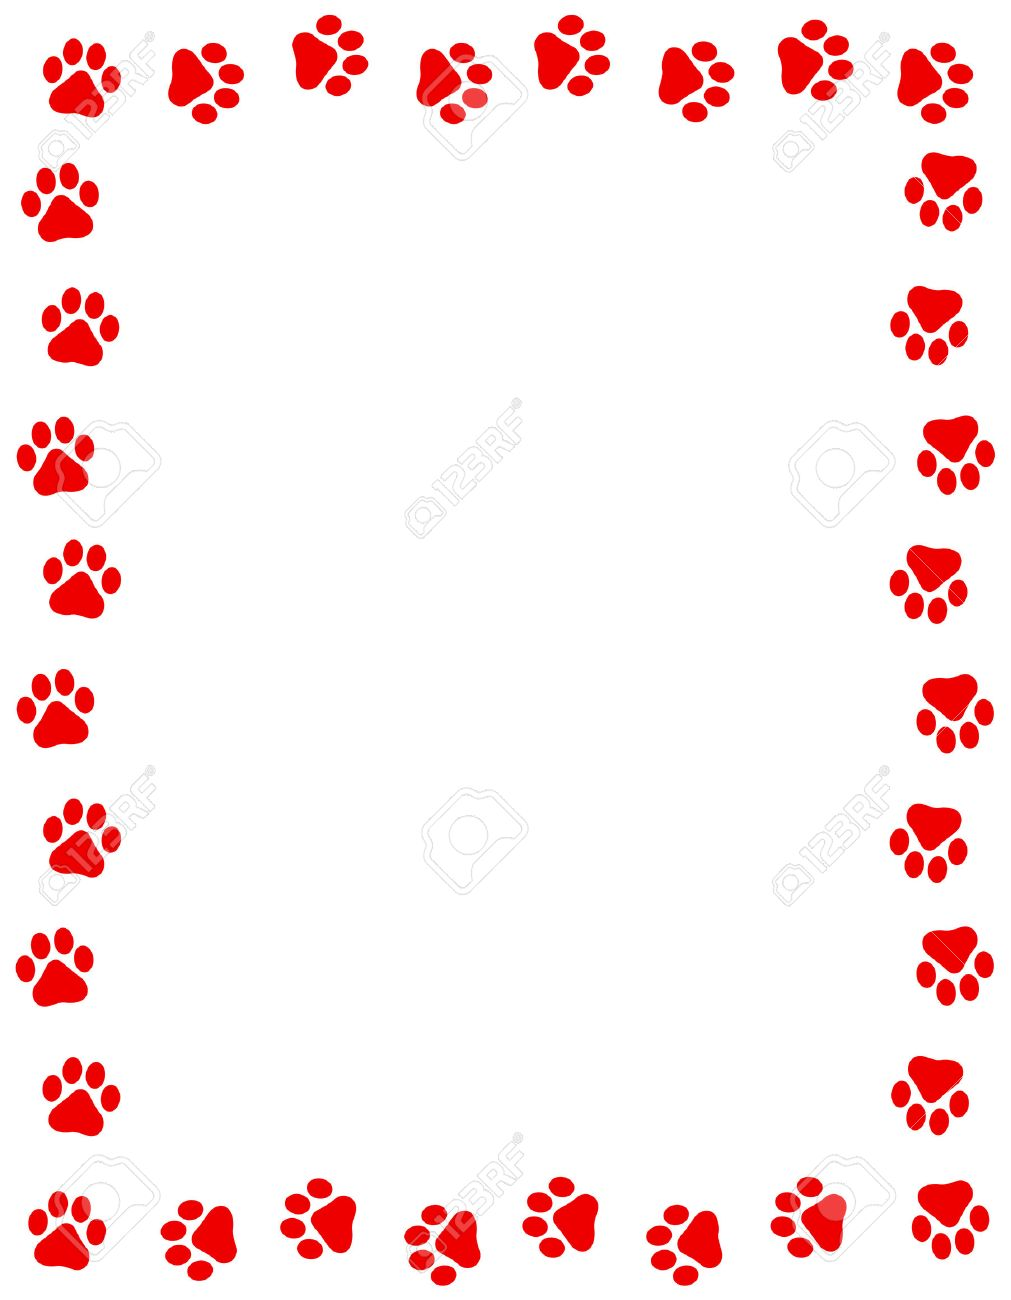 Red Color Dog Paw Prints Frame Border N White Background Stock